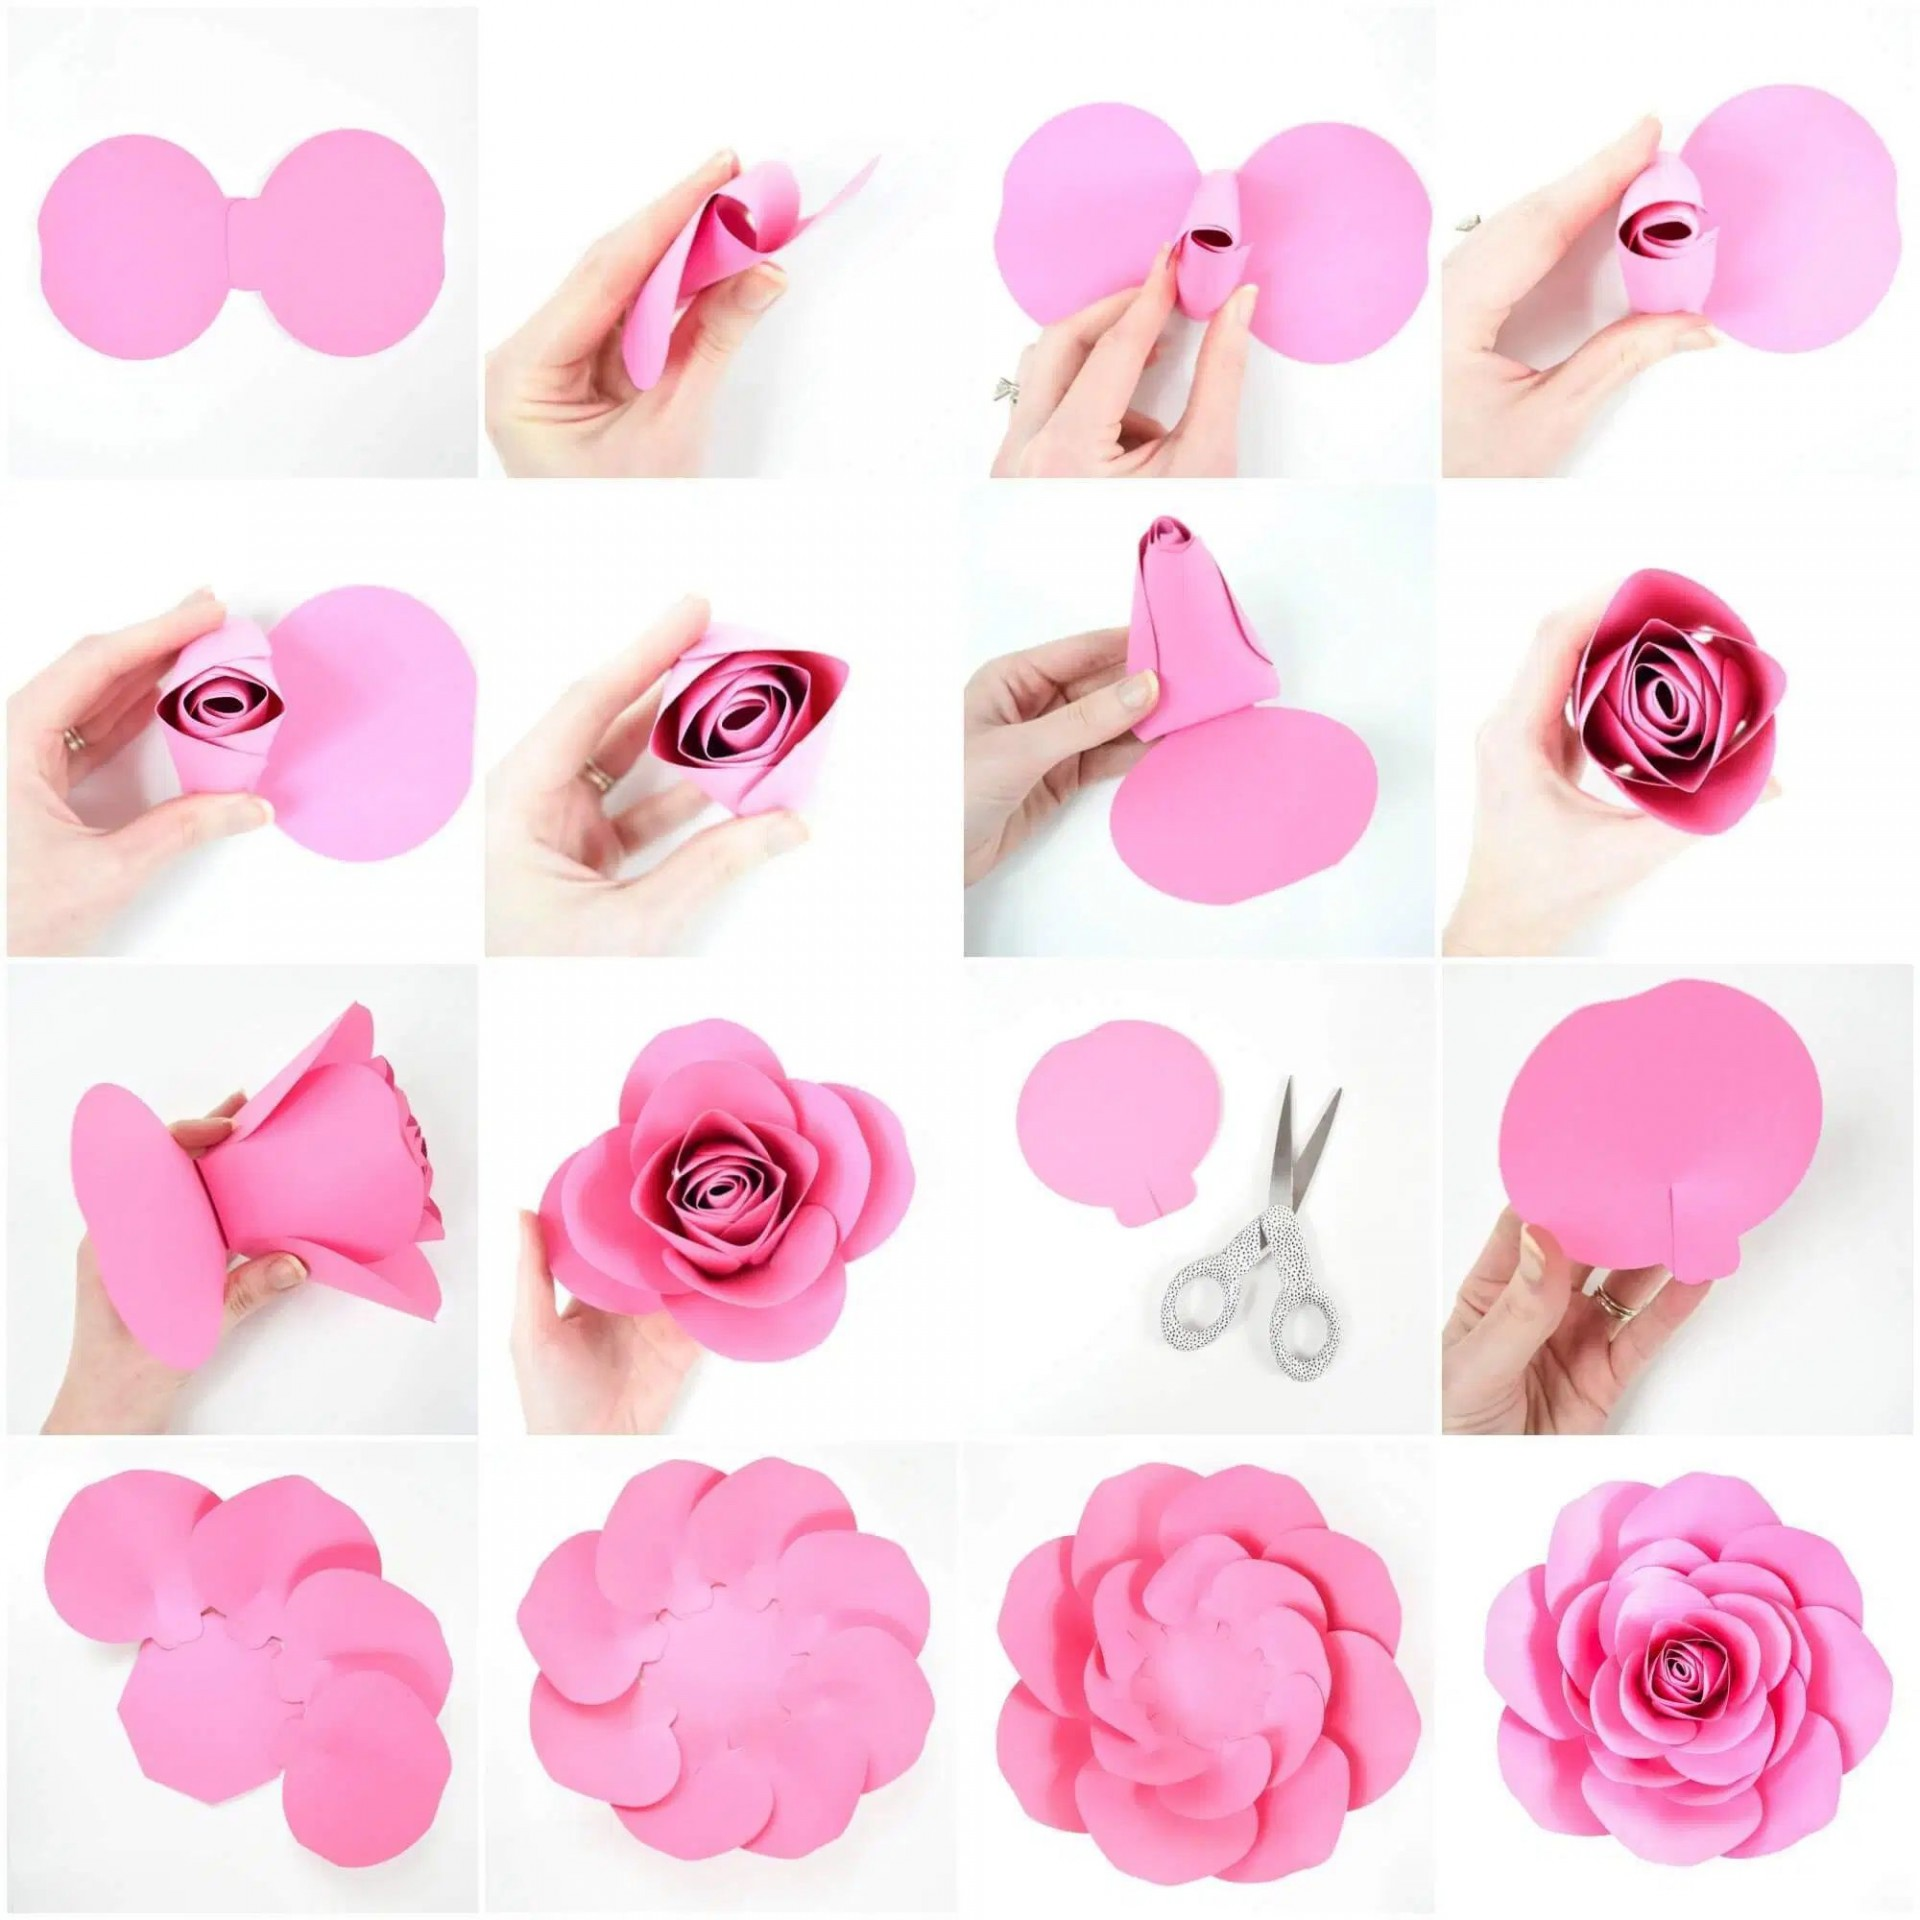 008 Dreaded Paper Rose Template Pdf Concept  Flower Giant Free Crepe1920